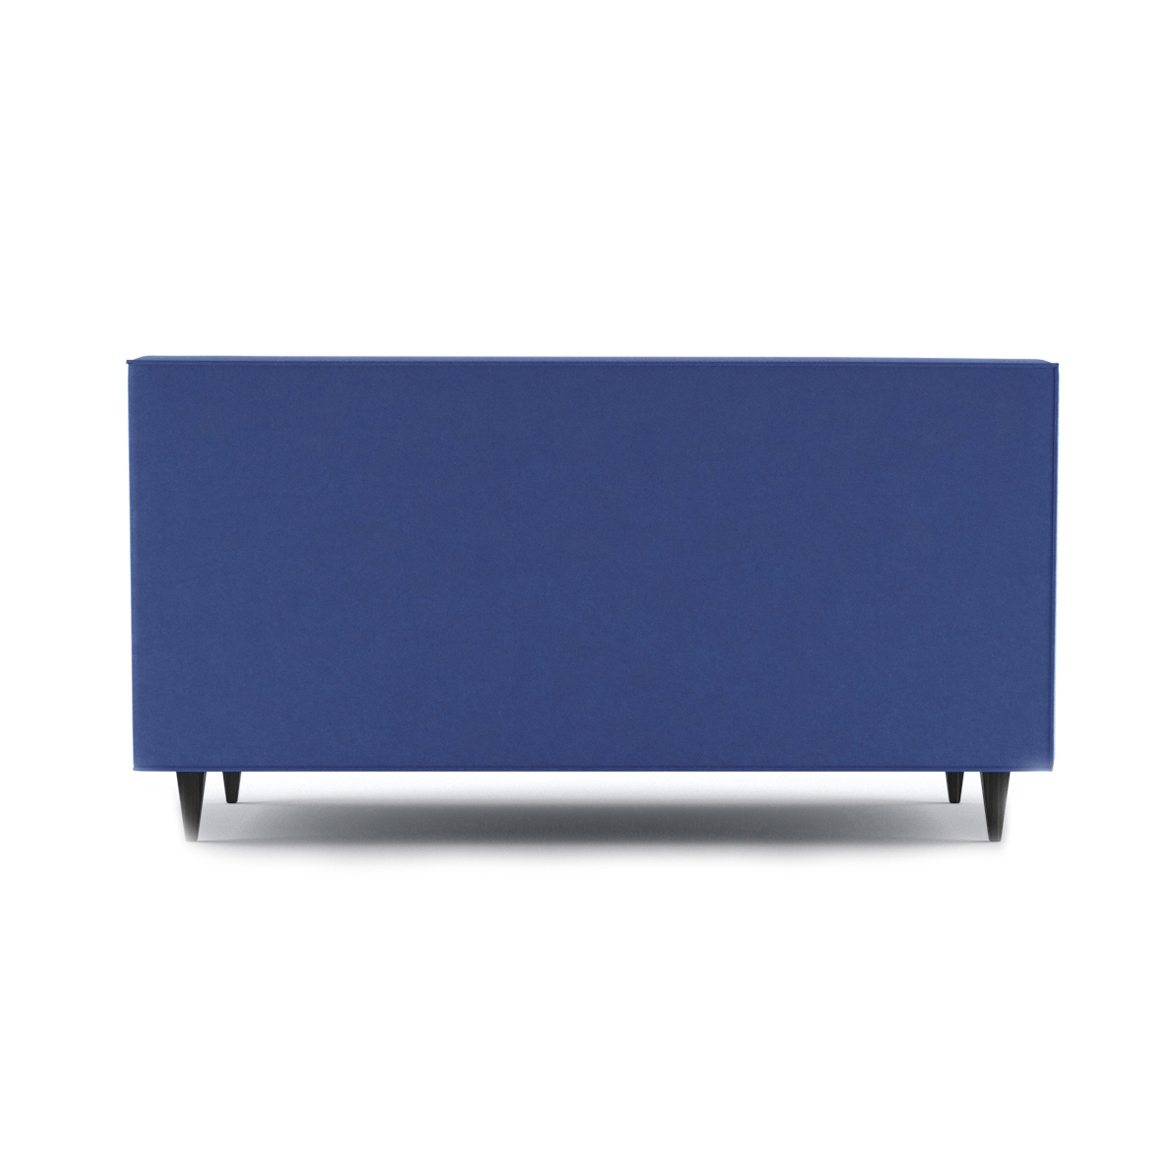 Bennett Two Seater Sofa by Bonham & Bonham Royal Blue 08